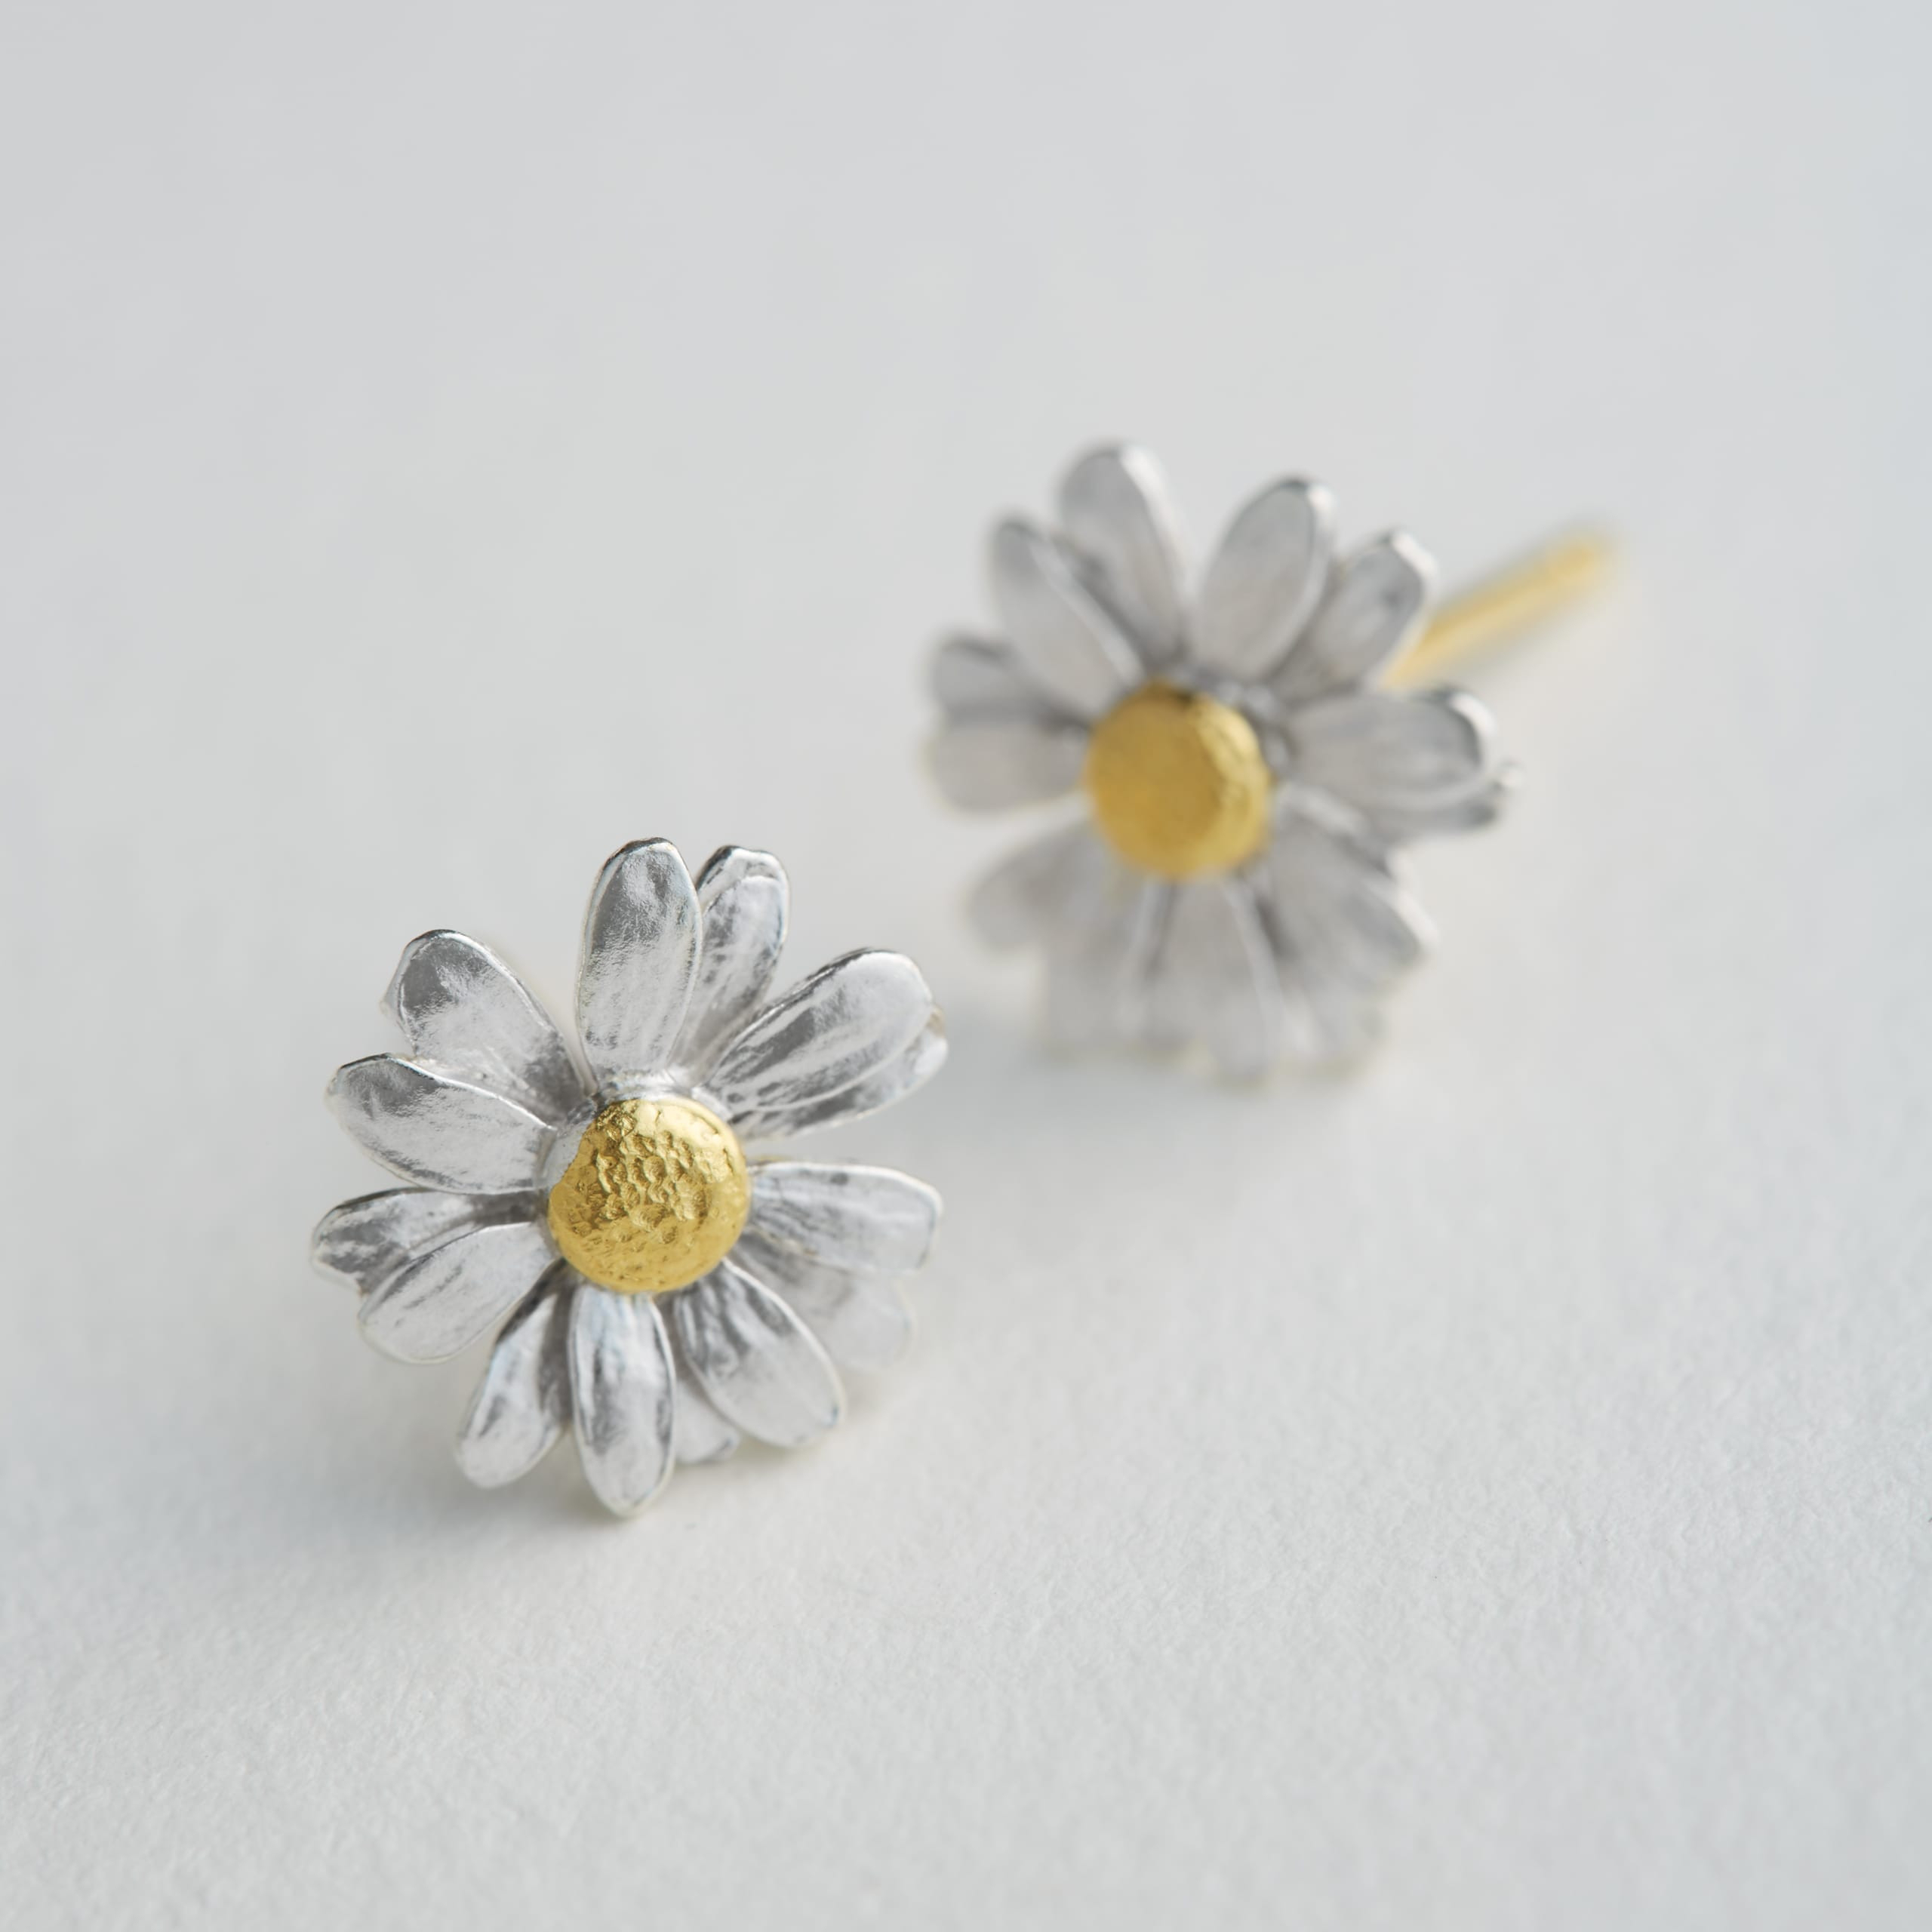 Classic Daisy Stud Earrings With Most Popular Classic Daisy Flower Band Rings (View 8 of 25)